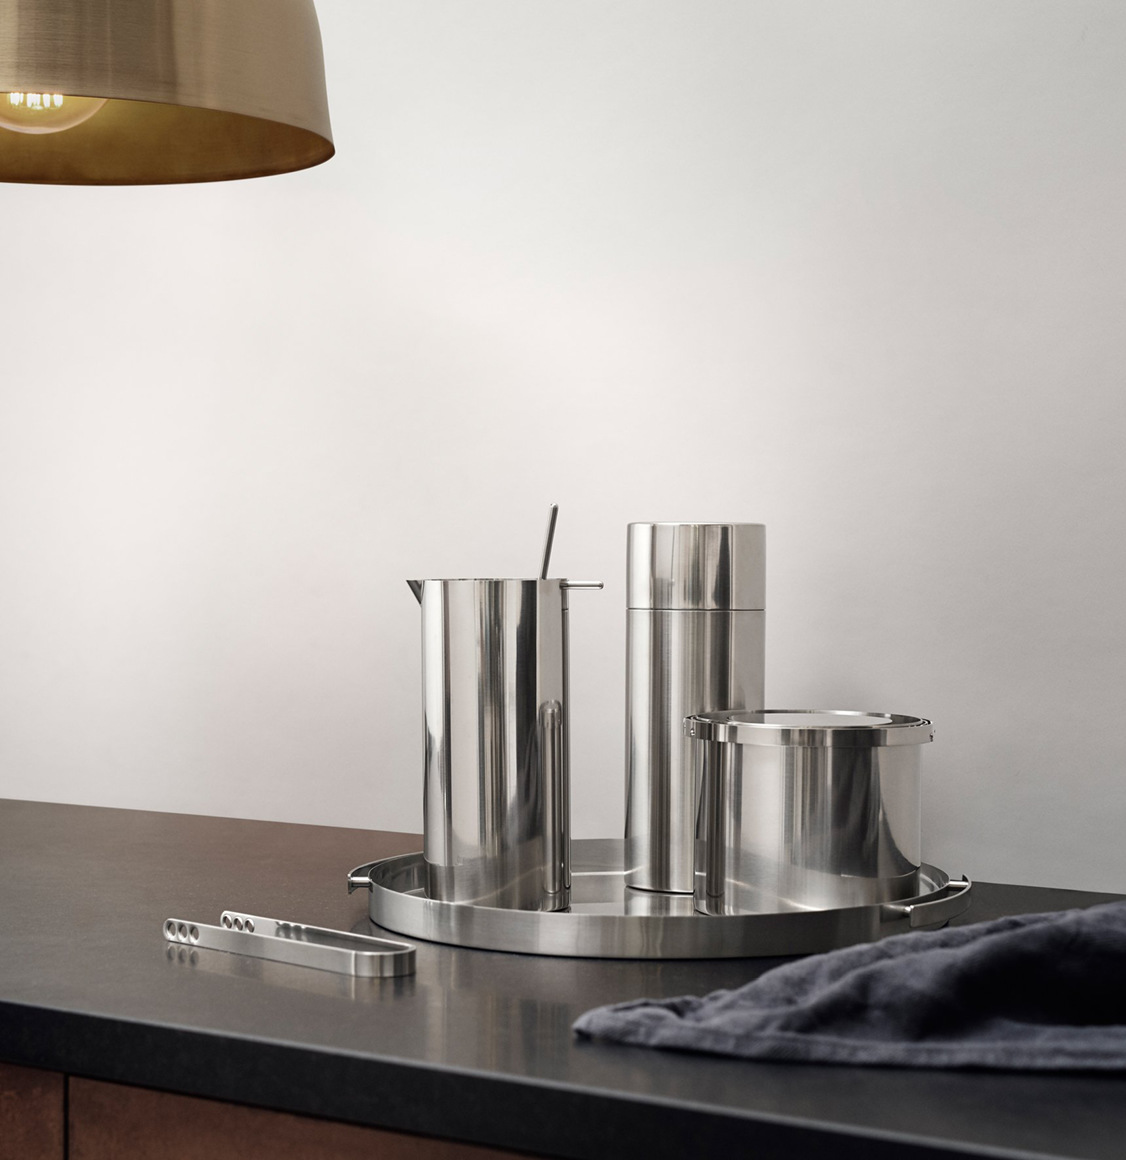 Stelton Stainless Steel Martini Mixer